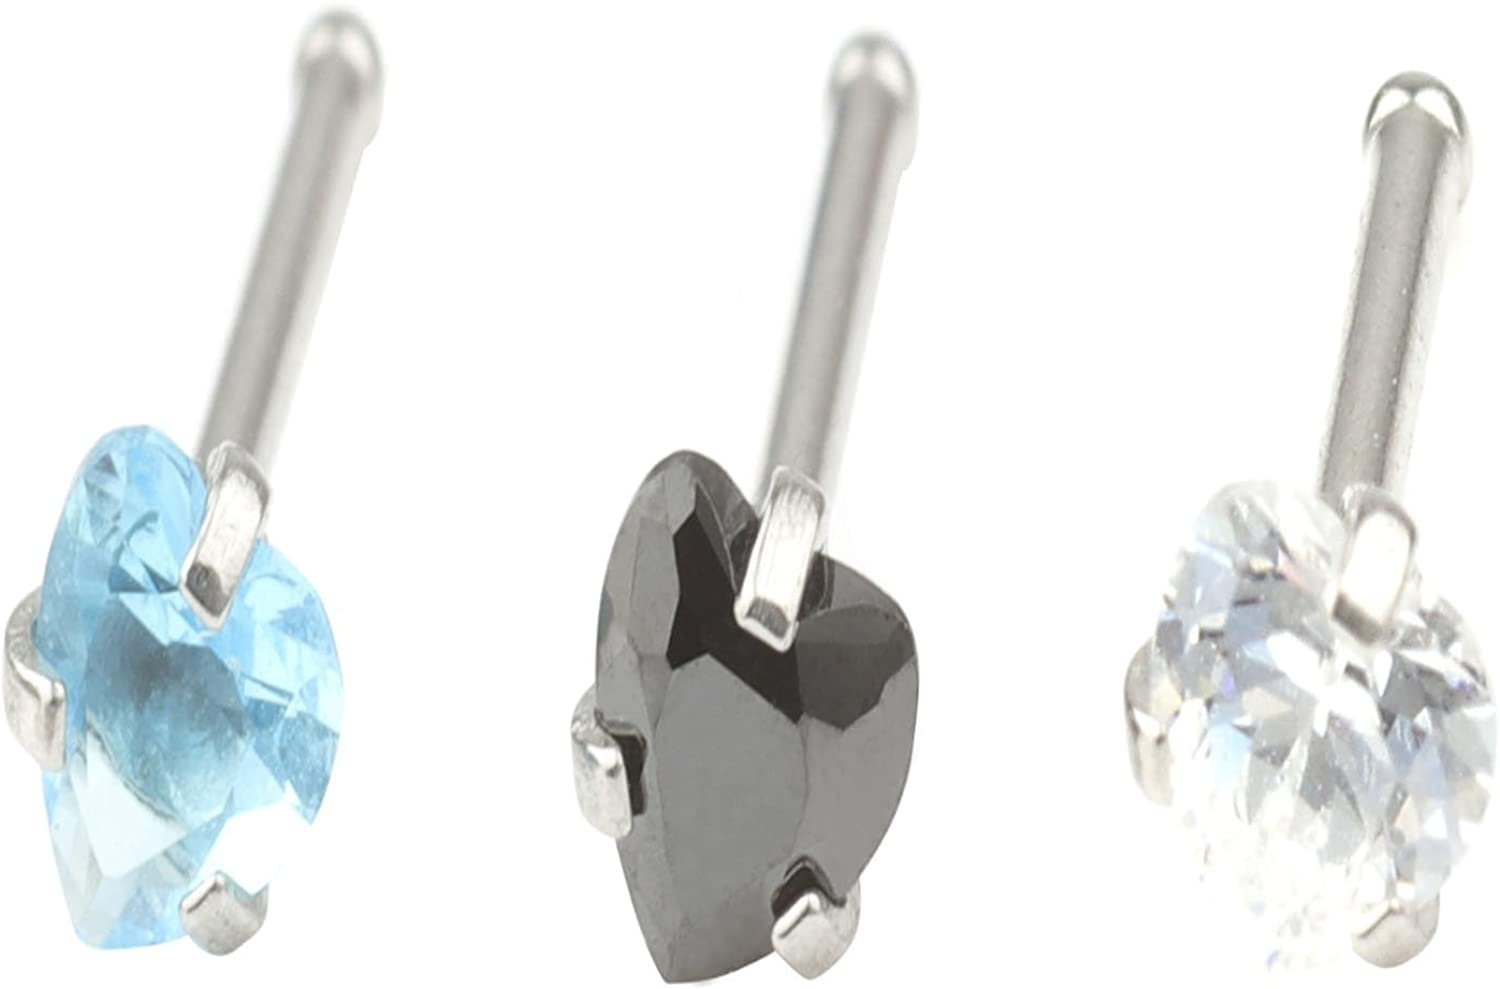 A+'s 20G 3 Pcs Mix Stainless Steel Nose Rings Studs Piercing Body Jewelry 2.5mm Heart Shape Cubic Zirconia &3